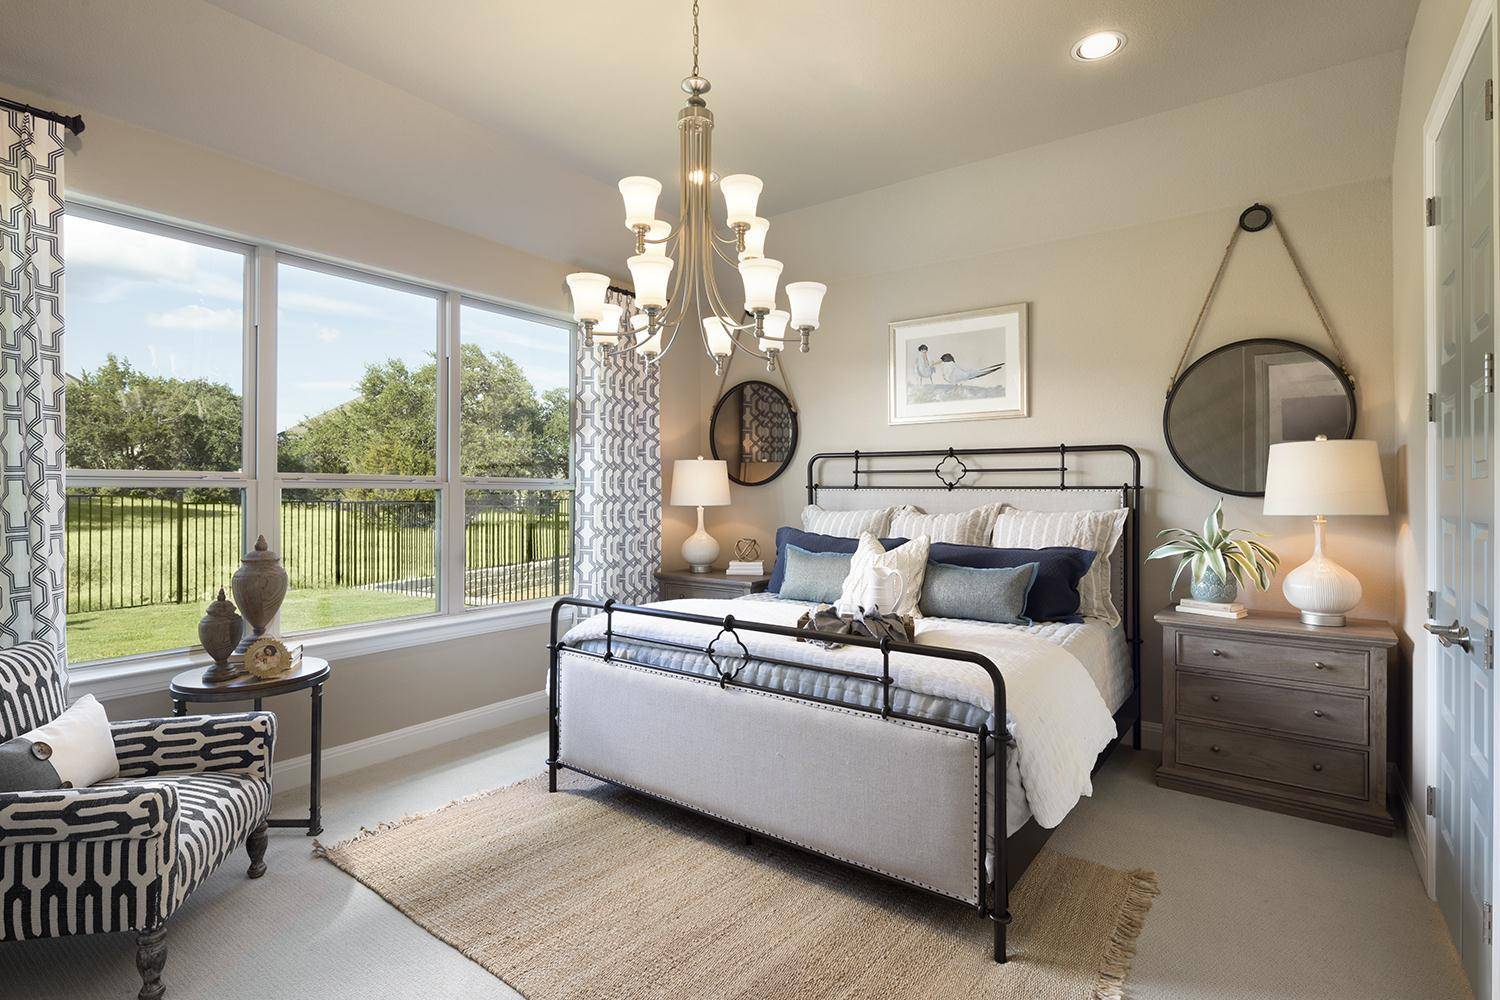 Bedroom featured in the Avondale w/ Casita By Sitterle Homes in Austin, TX